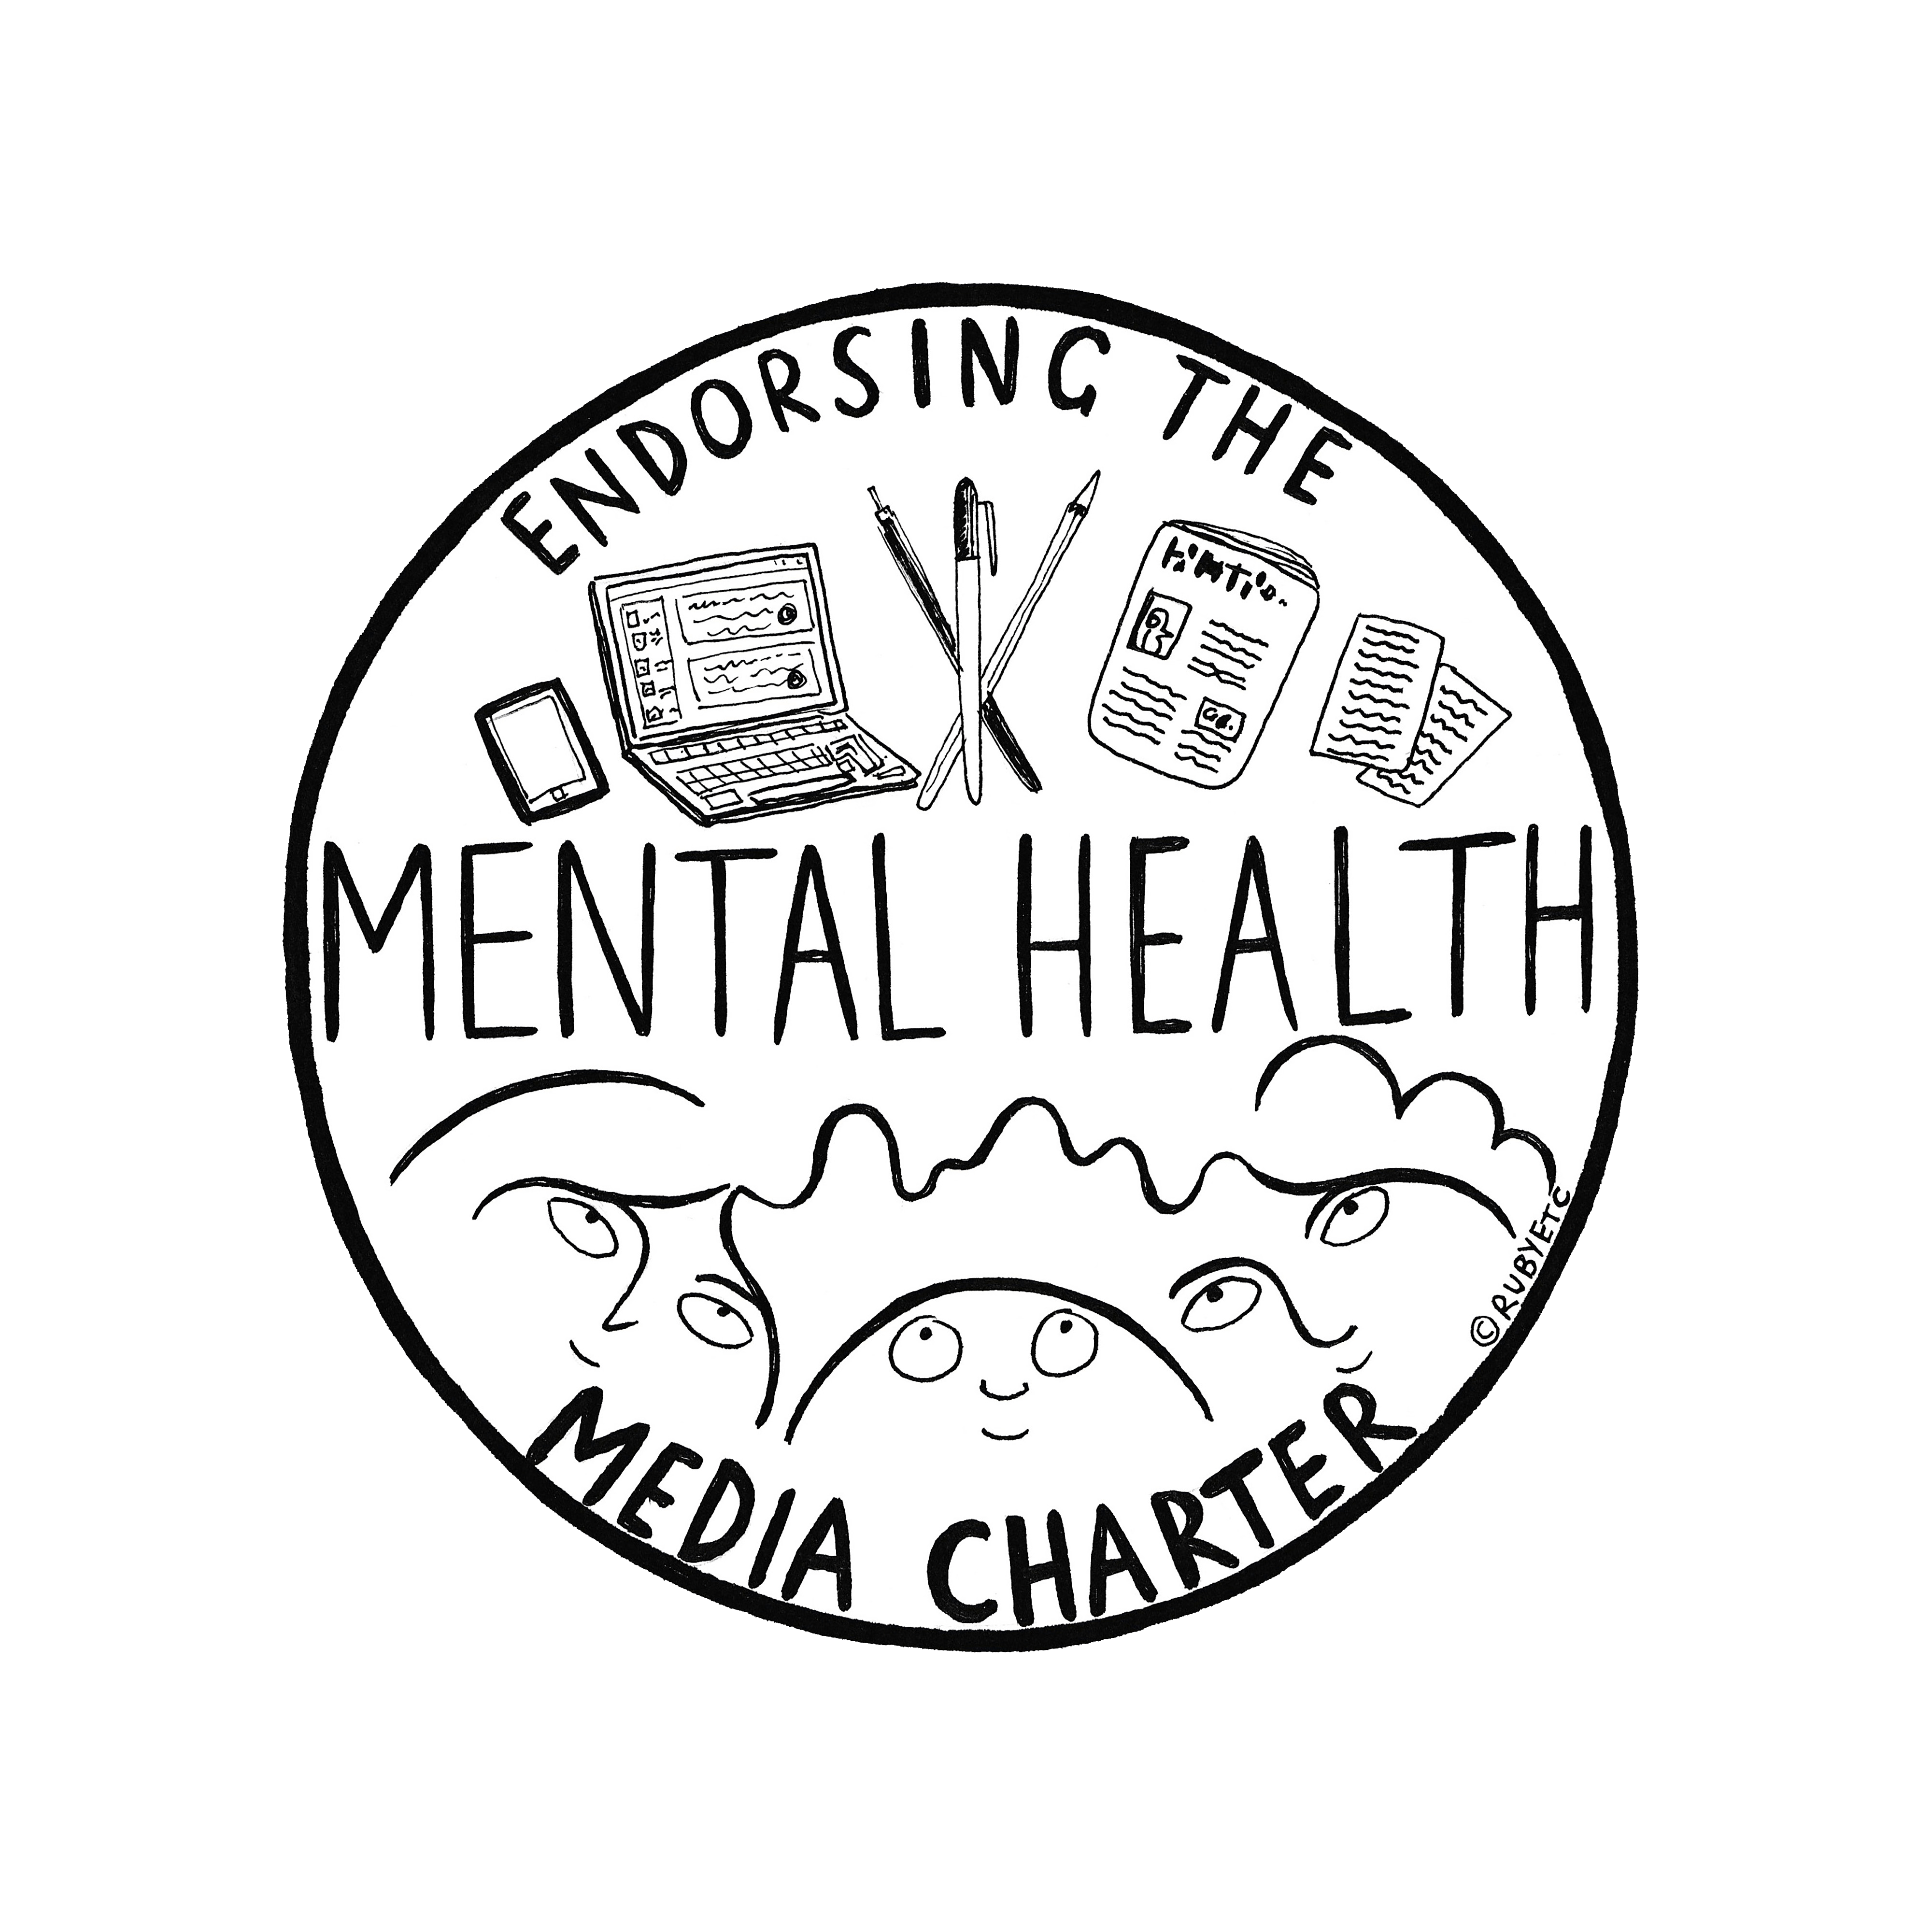 Note: Copyright of all images in transparent mental health